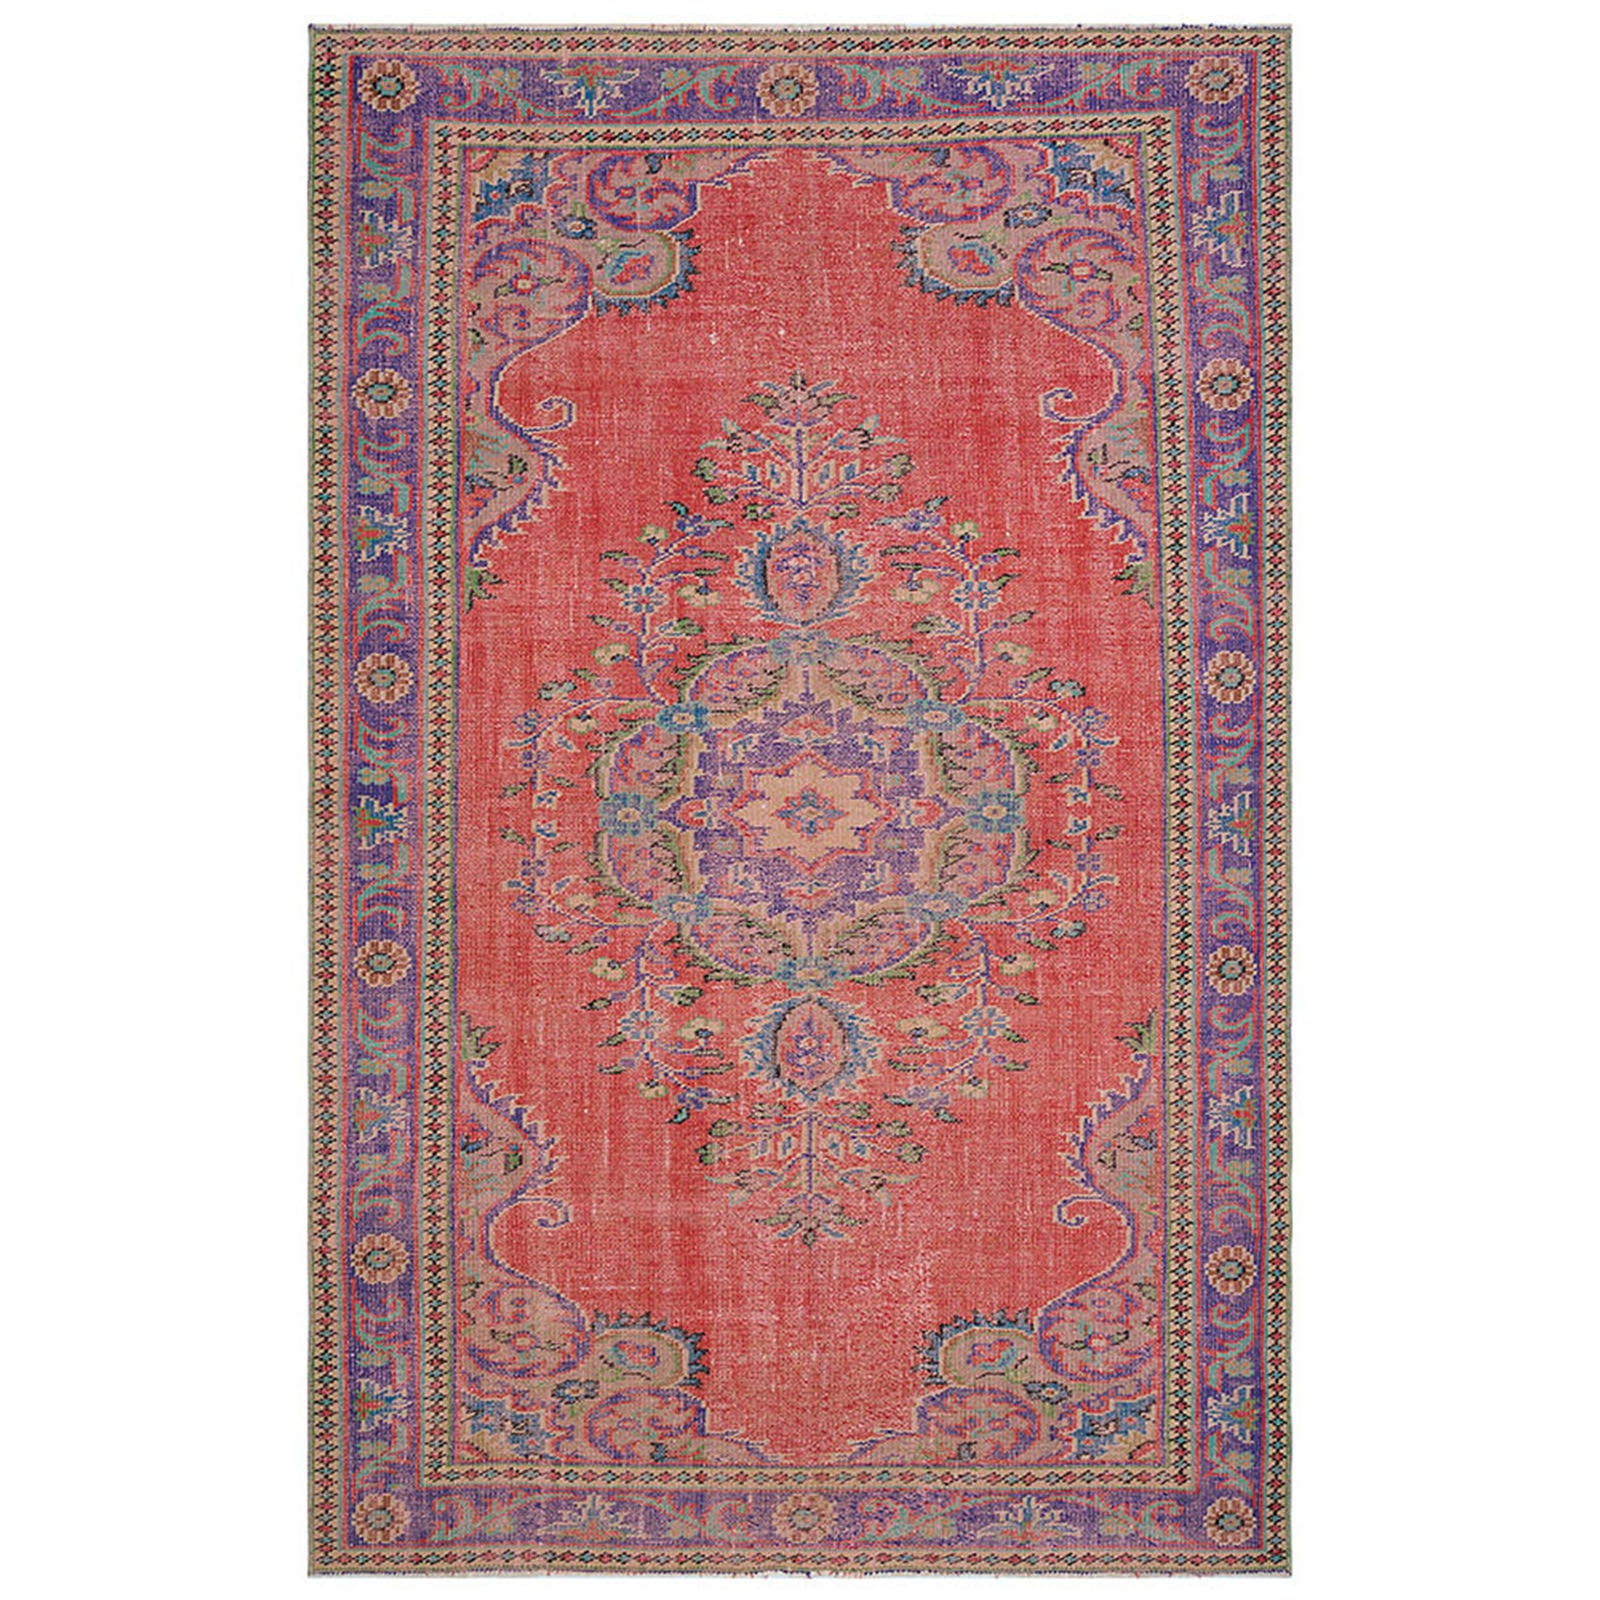 Hali 176X284  CM Bursa Handmade over dyed rug  2030 -  176*284 سجاده بورصة صناعة يدوية على بساط مصبوغ - Shop Online Furniture and Home Decor Store in Dubai, UAE at ebarza